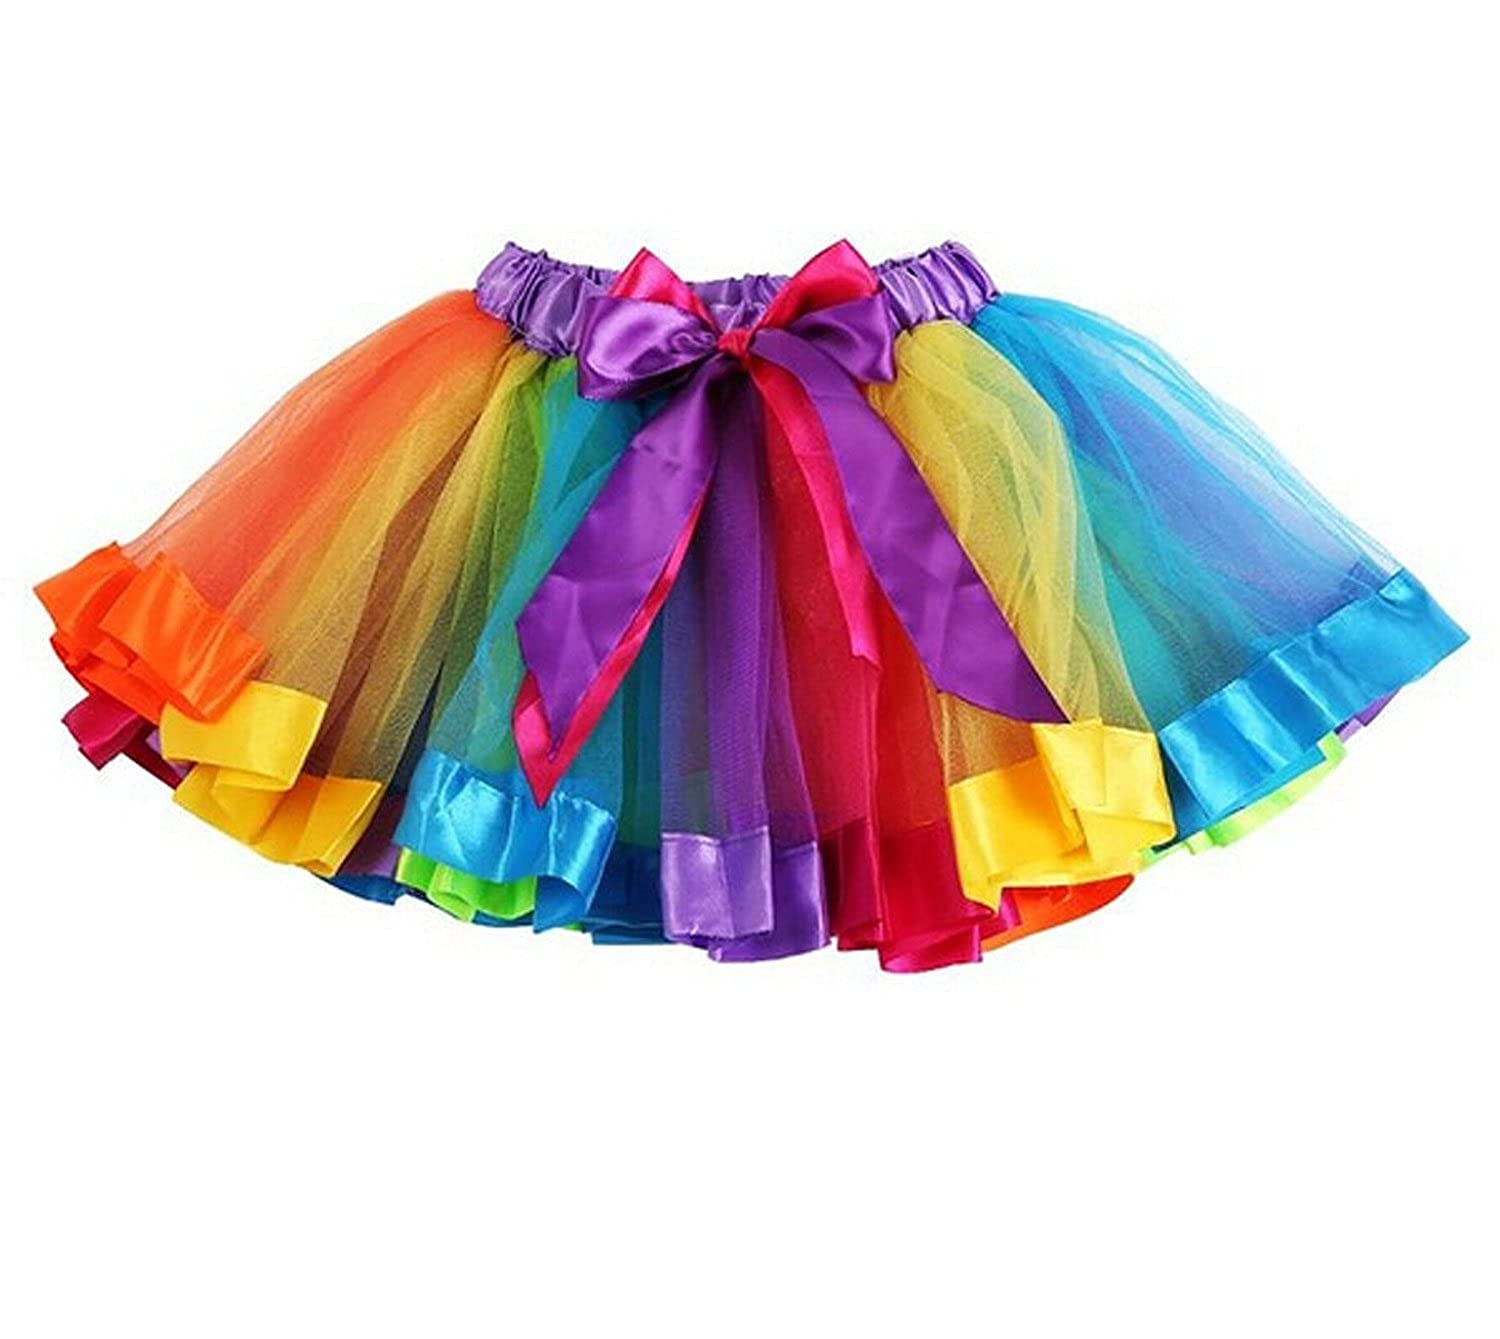 TopTie Girls Layered Rainbow Tutu Skirt Ballet Dance Party Dress Ruffle Tiered KBDH-AY58611